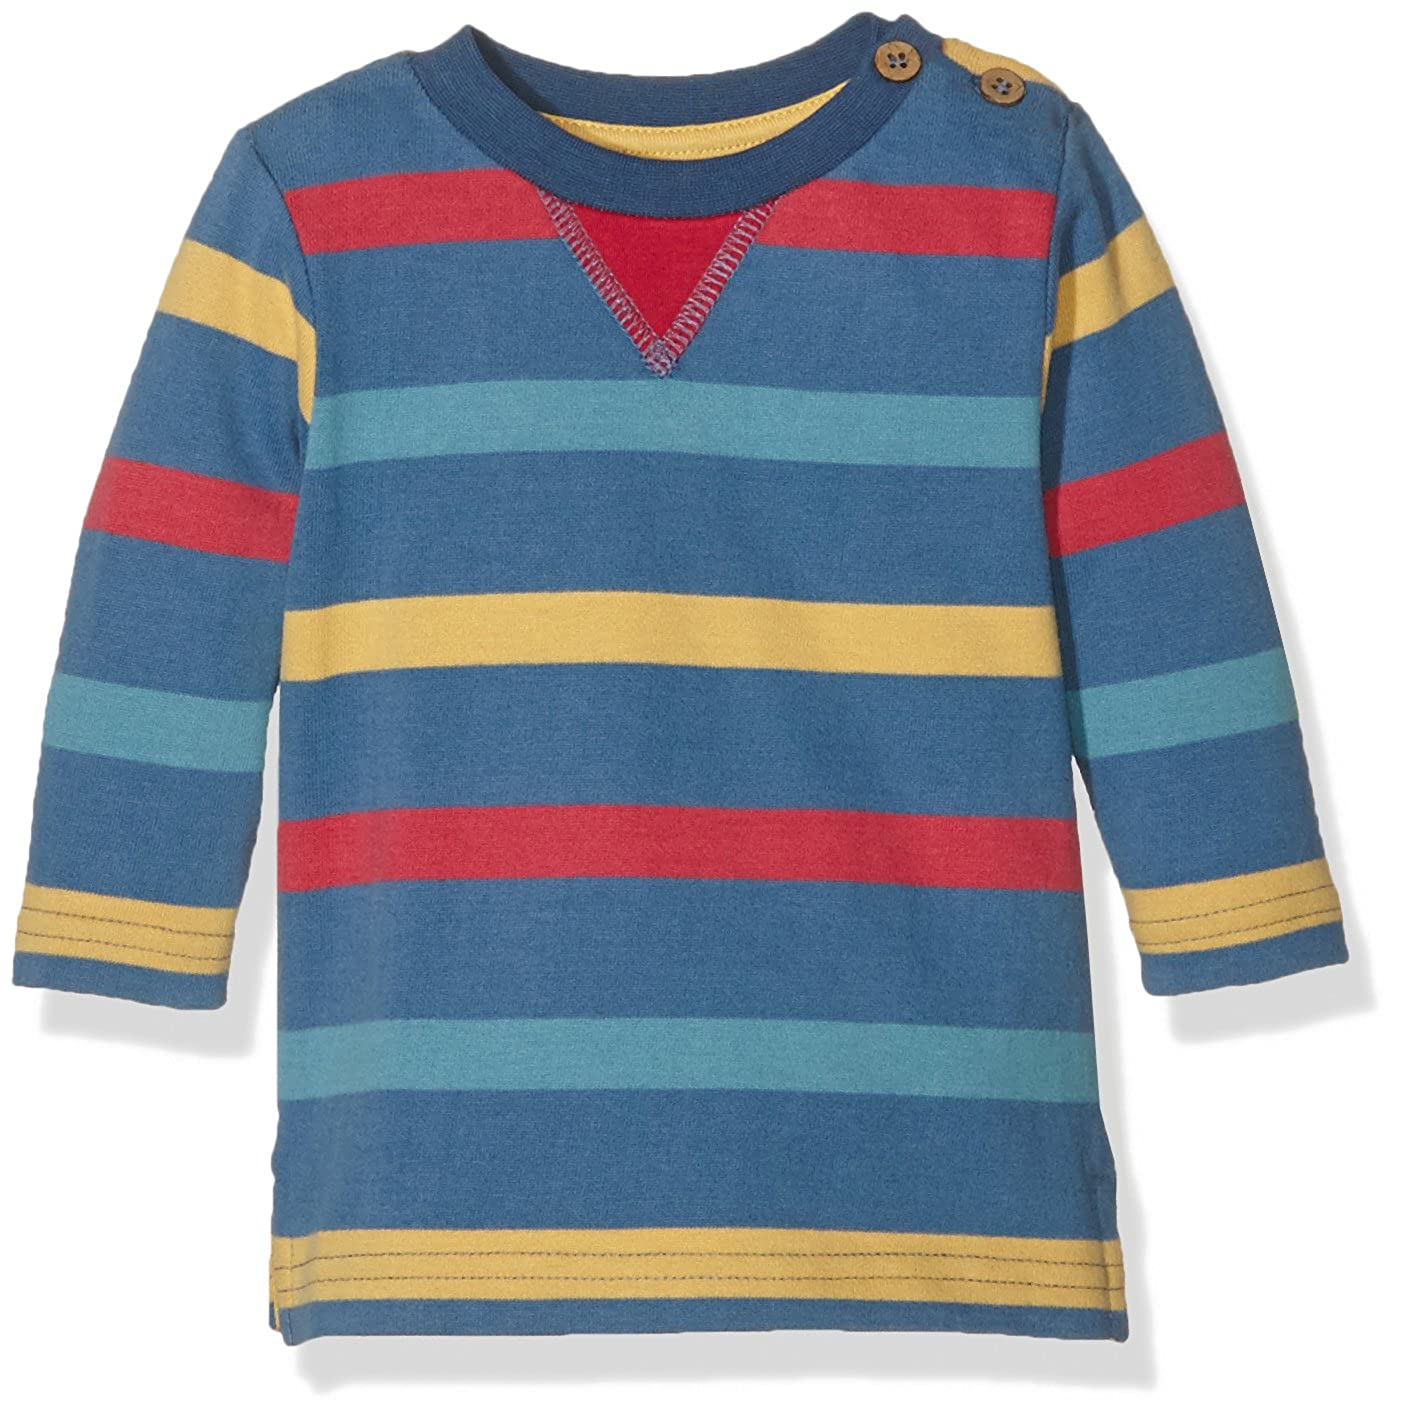 Kite Baby Boys' Stripy Top Polo Shirt BB797